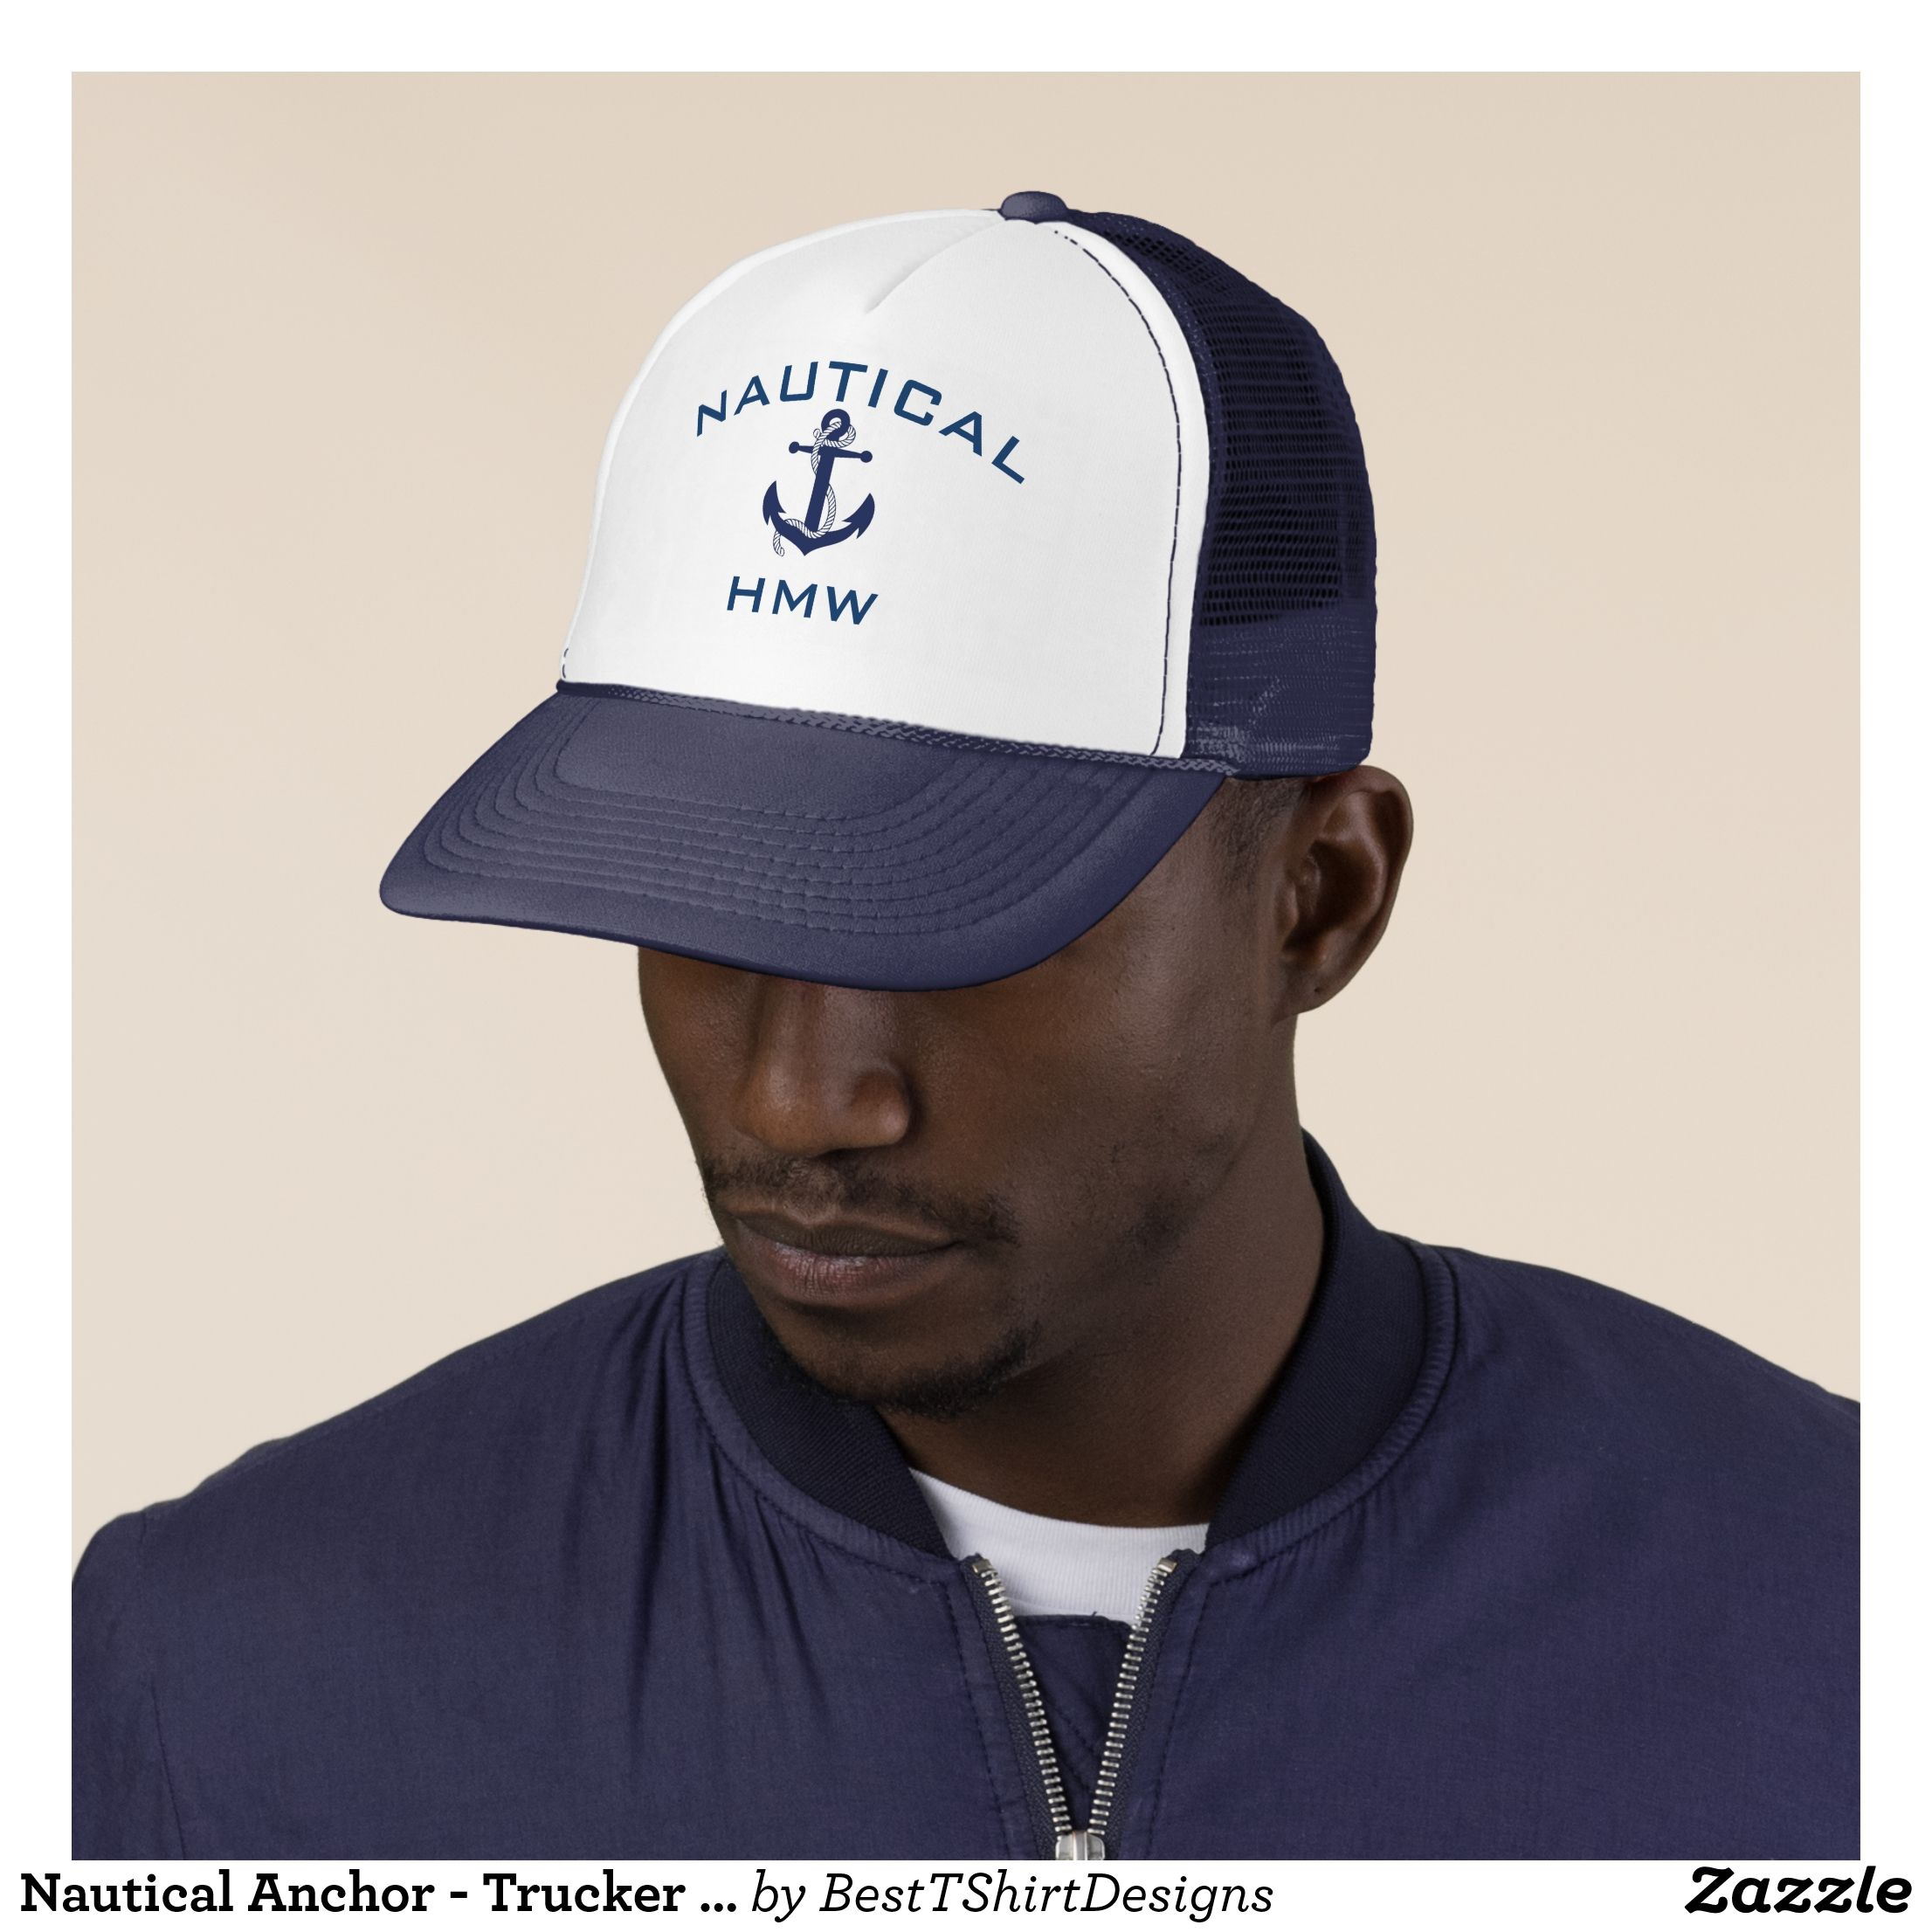 29fa0be7829a2 Nautical Anchor - Trucker Hat - Monogram - Navy - Urban Hunter Fisher  Farmer Redneck Hats By Talented Fashion And Graphic Designers -  hats   truckerhat ...